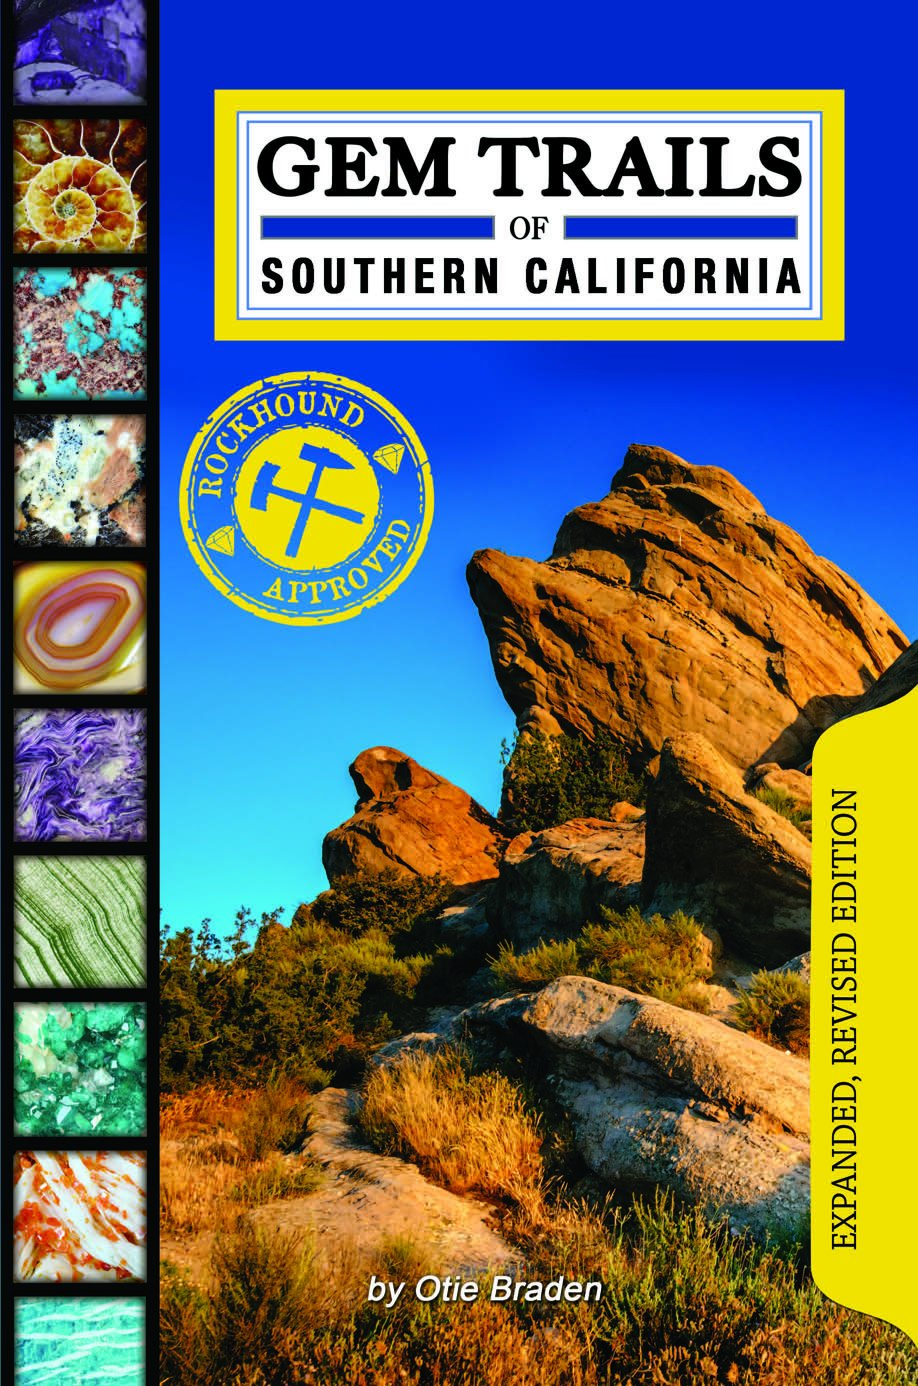 Gem trails of southern california otie braden 9781889786544 gem trails of southern california otie braden 9781889786544 amazon books fandeluxe Image collections